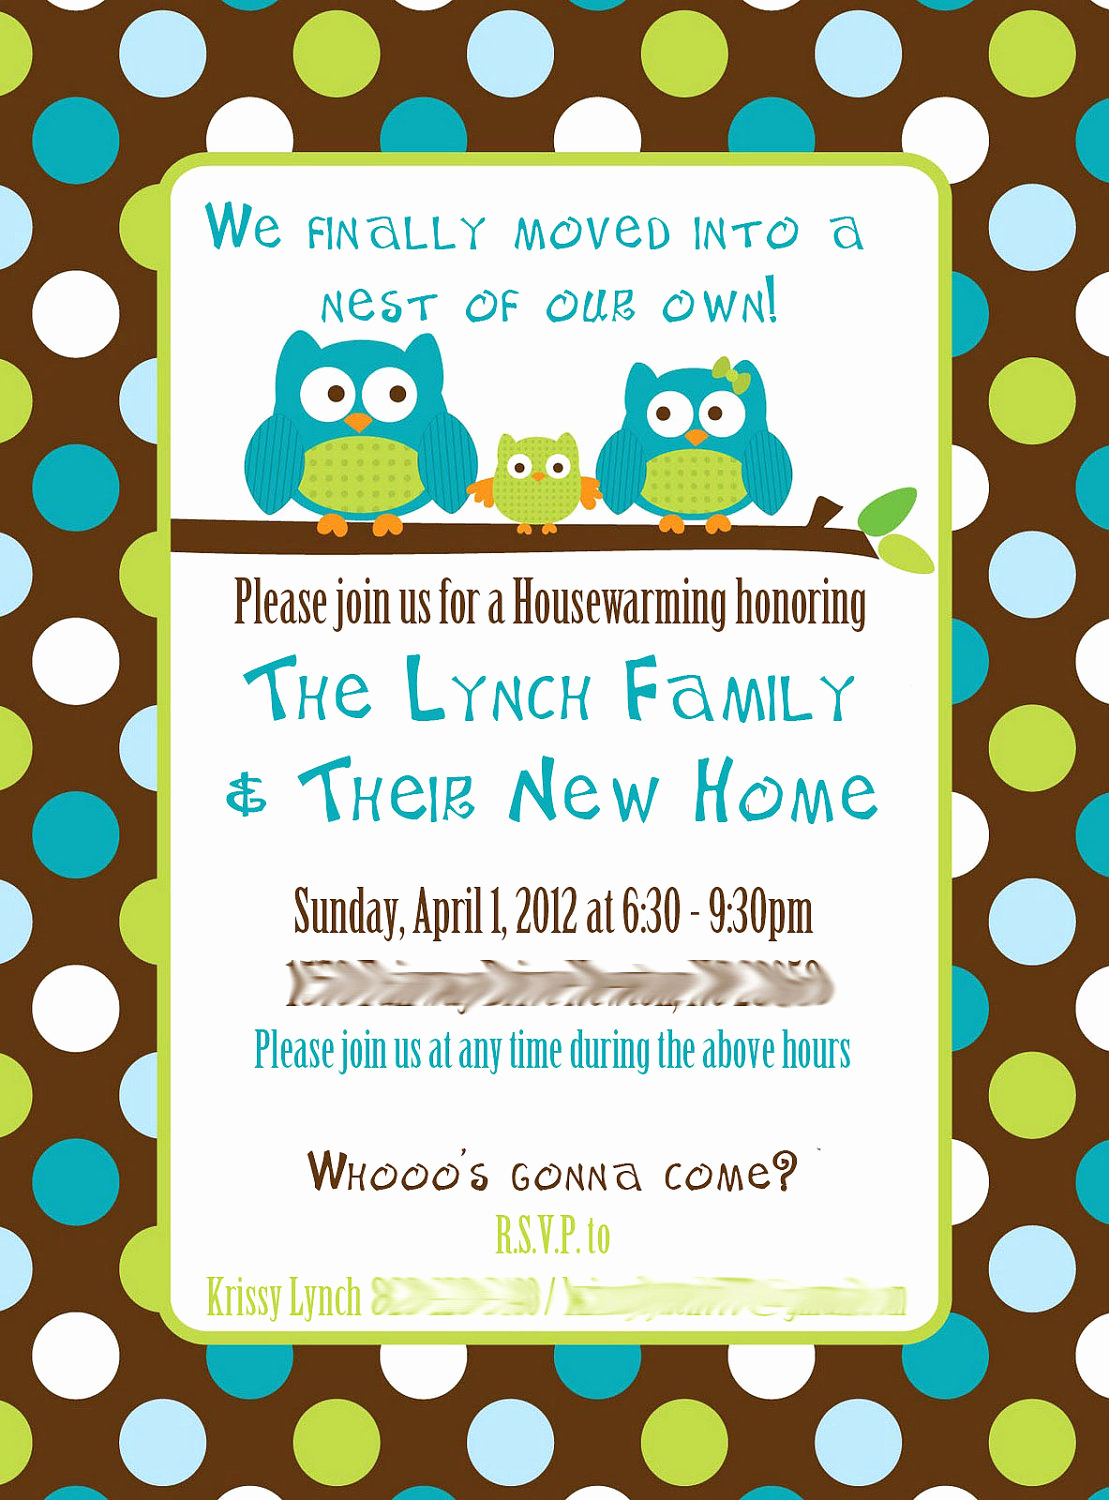 Housewarming Party Invitation Wording Beautiful Housewarming Invitation Quotes Quotesgram